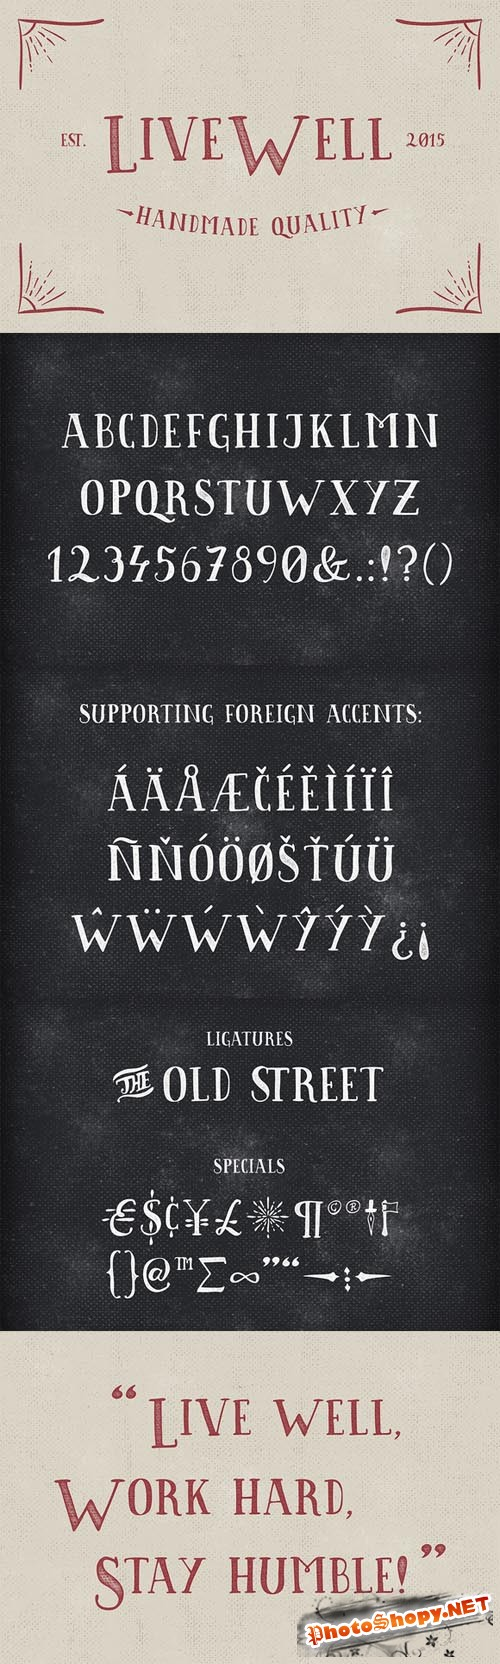 Font OTF - Livewell Typeface